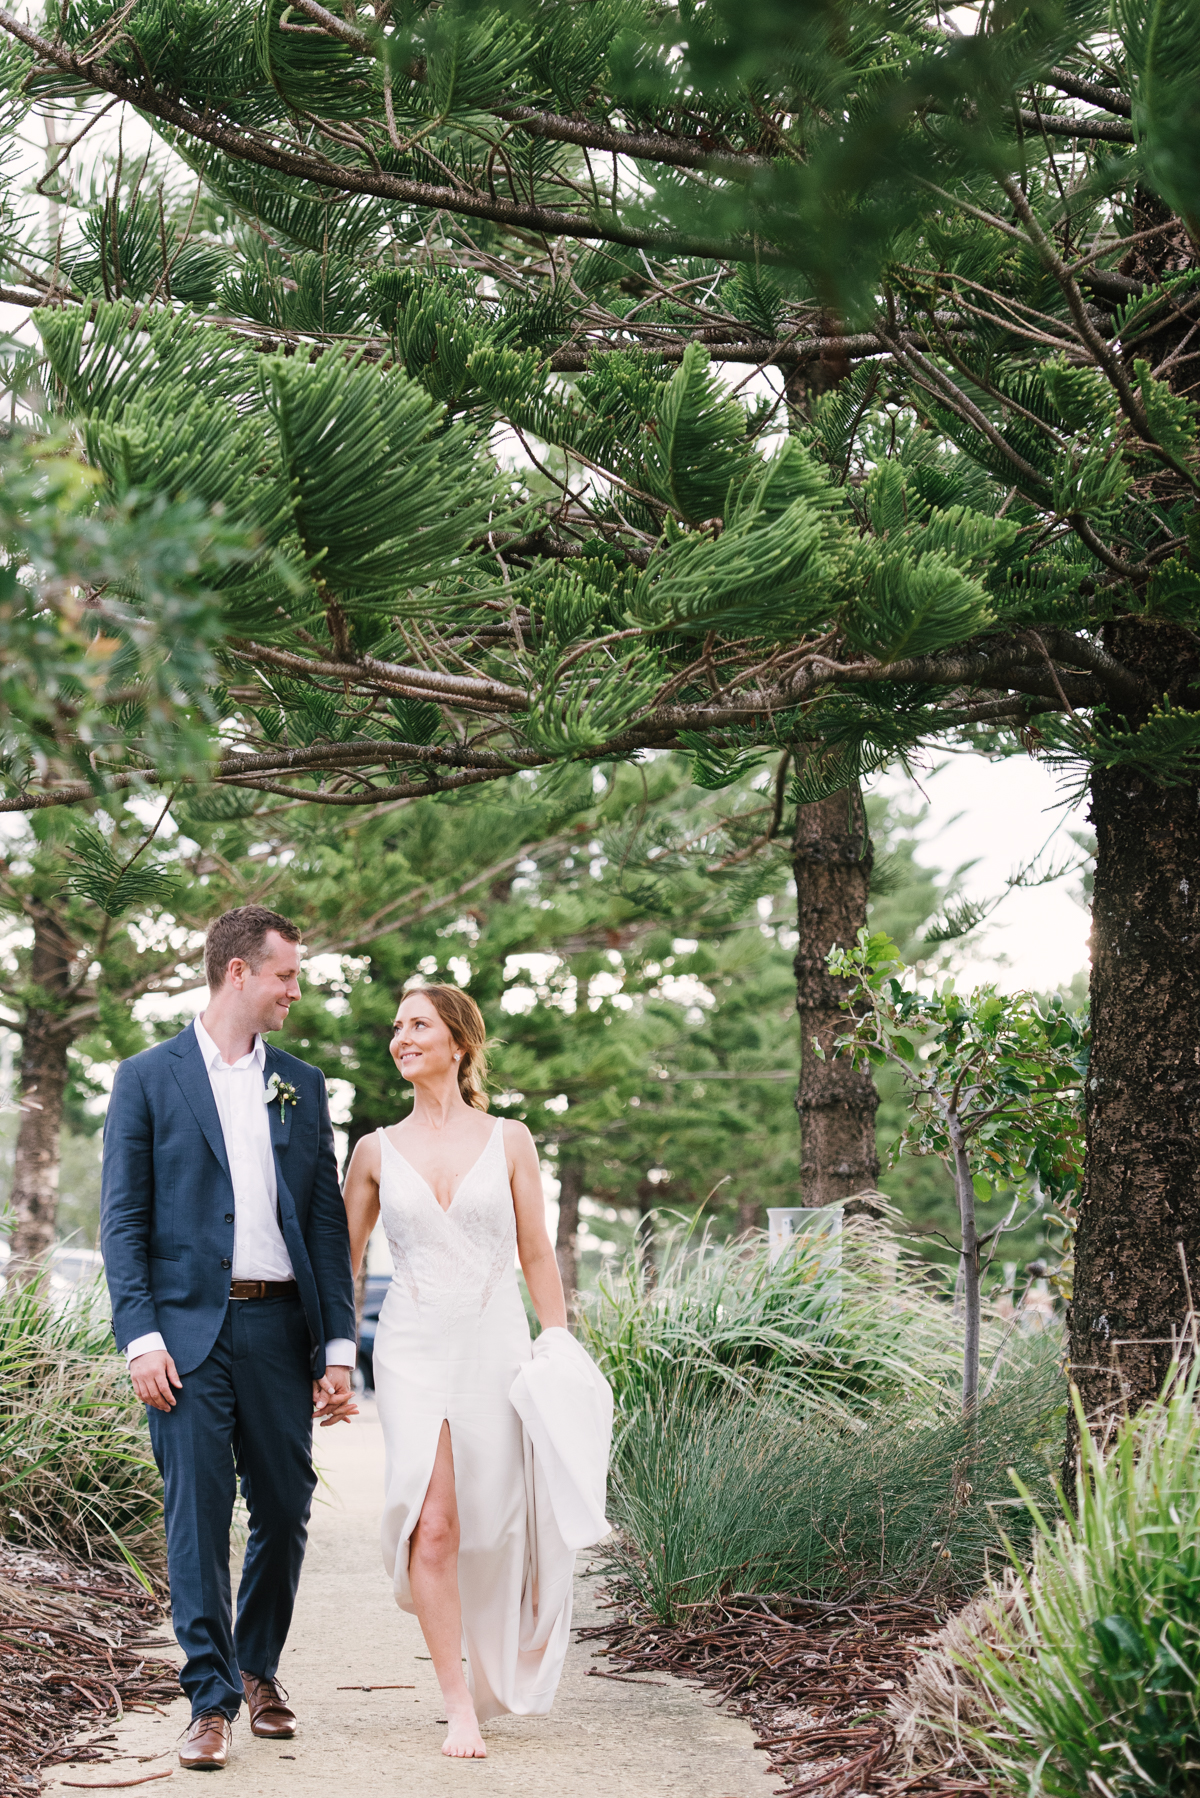 Jo and Andrew- wedding photographer, byron bay wedding and family photographer, tweed heads wedding and family photography-623.jpg